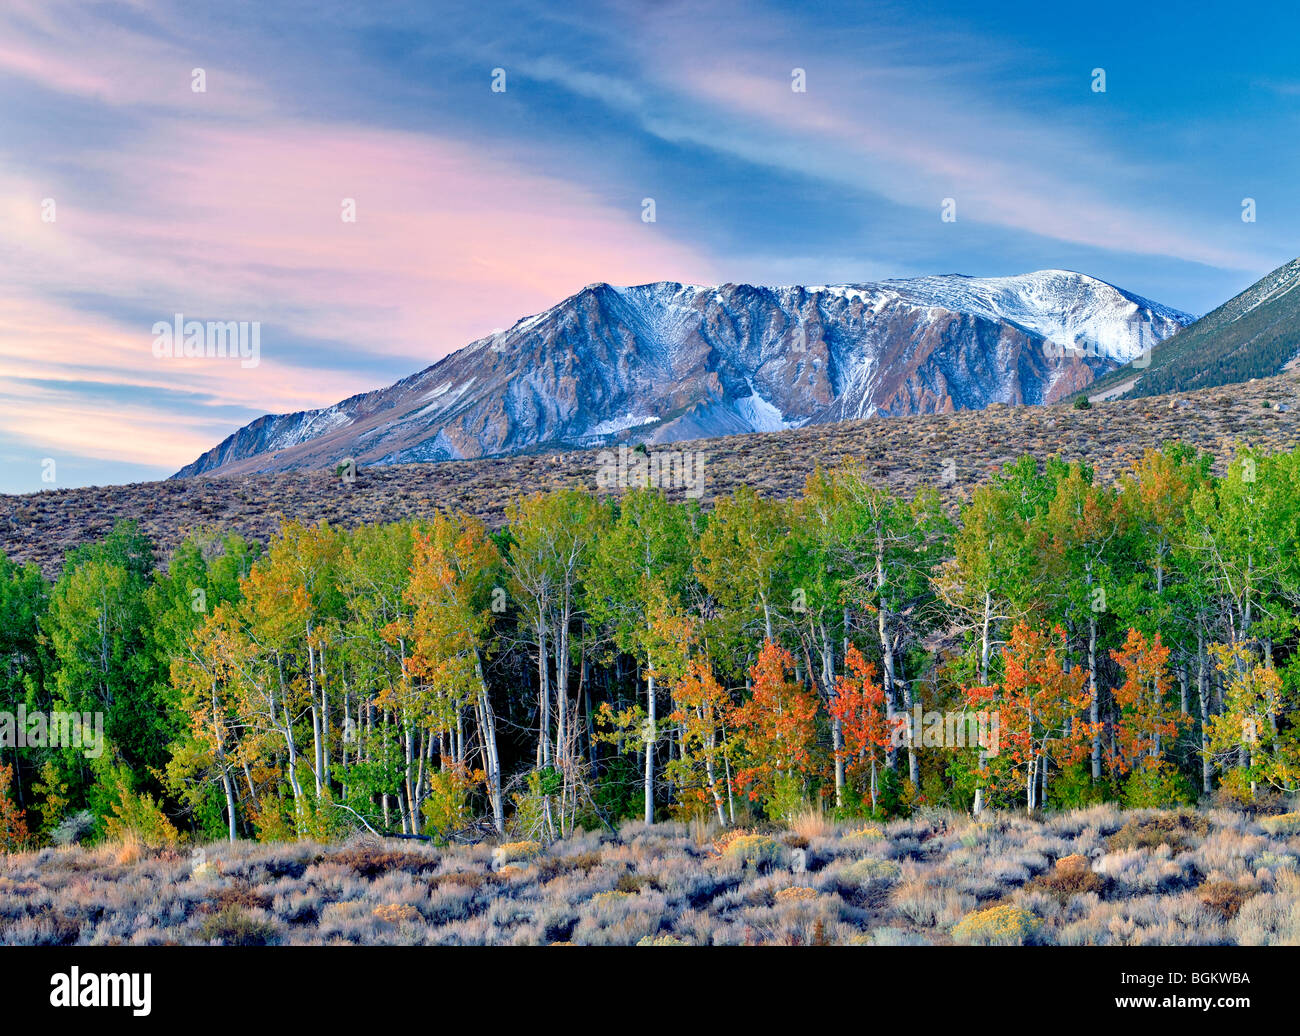 Eastern Sierra Mountains with sunrise and fall colored aspens and snow. - Stock Image